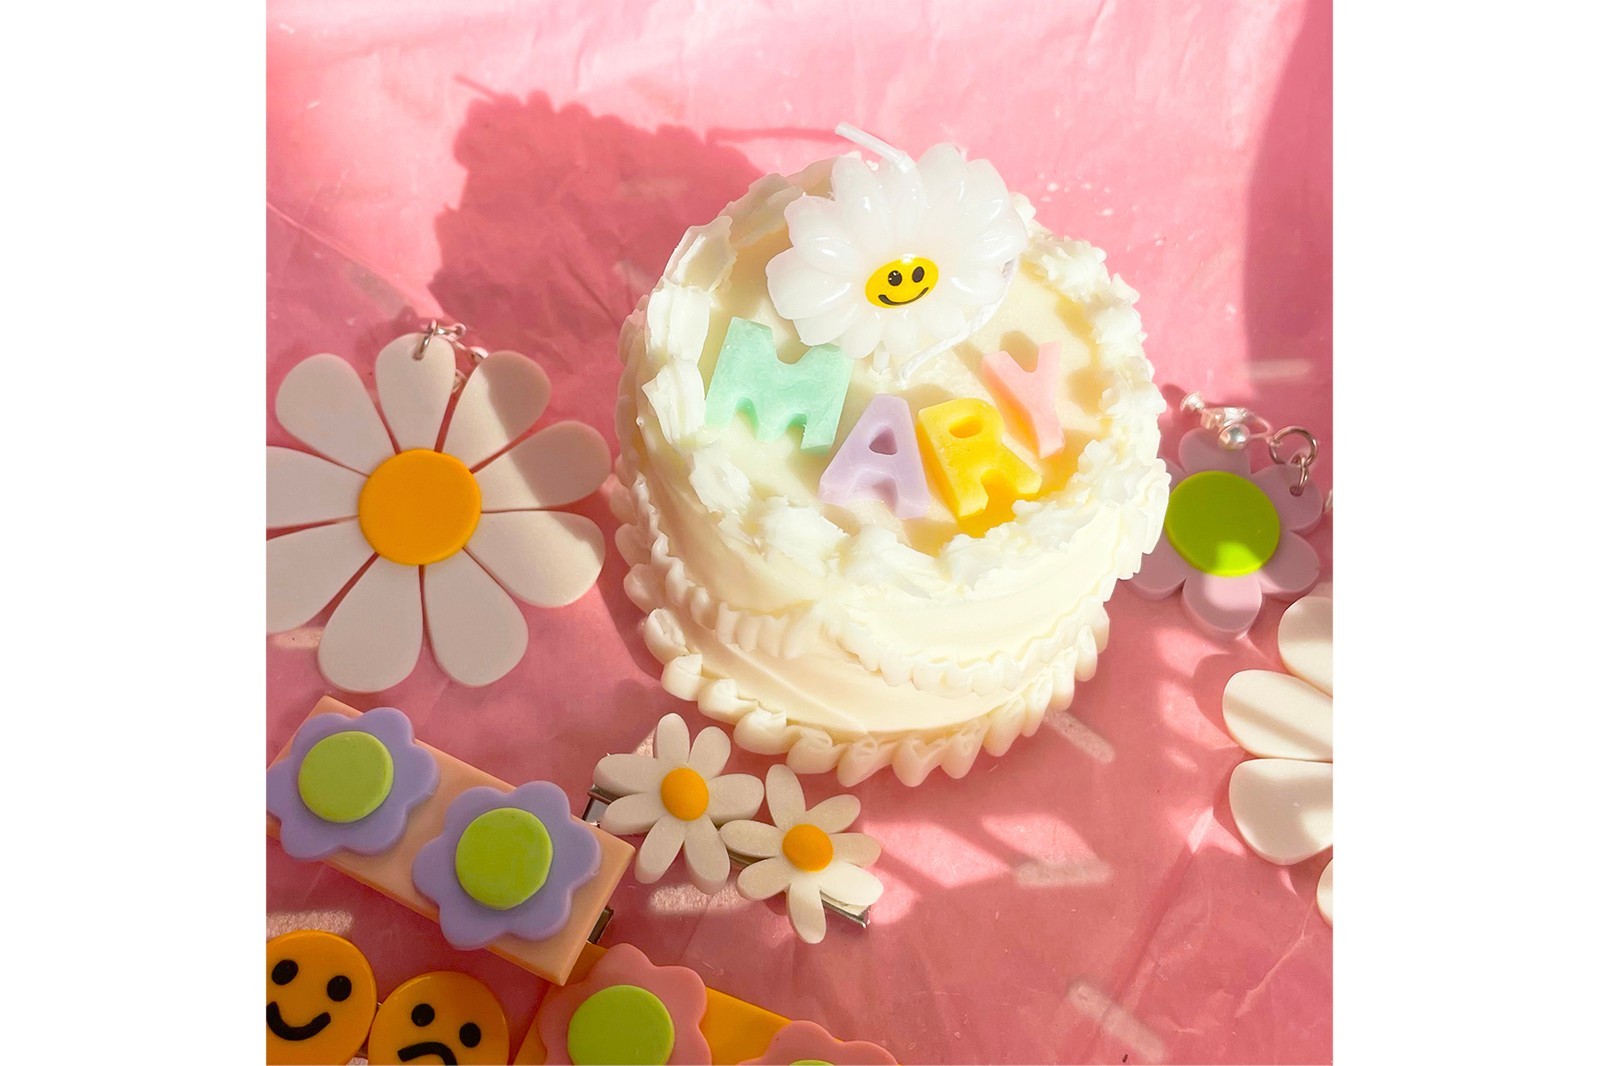 Sculpted Candle Yui Brooklyn Cake Shaped